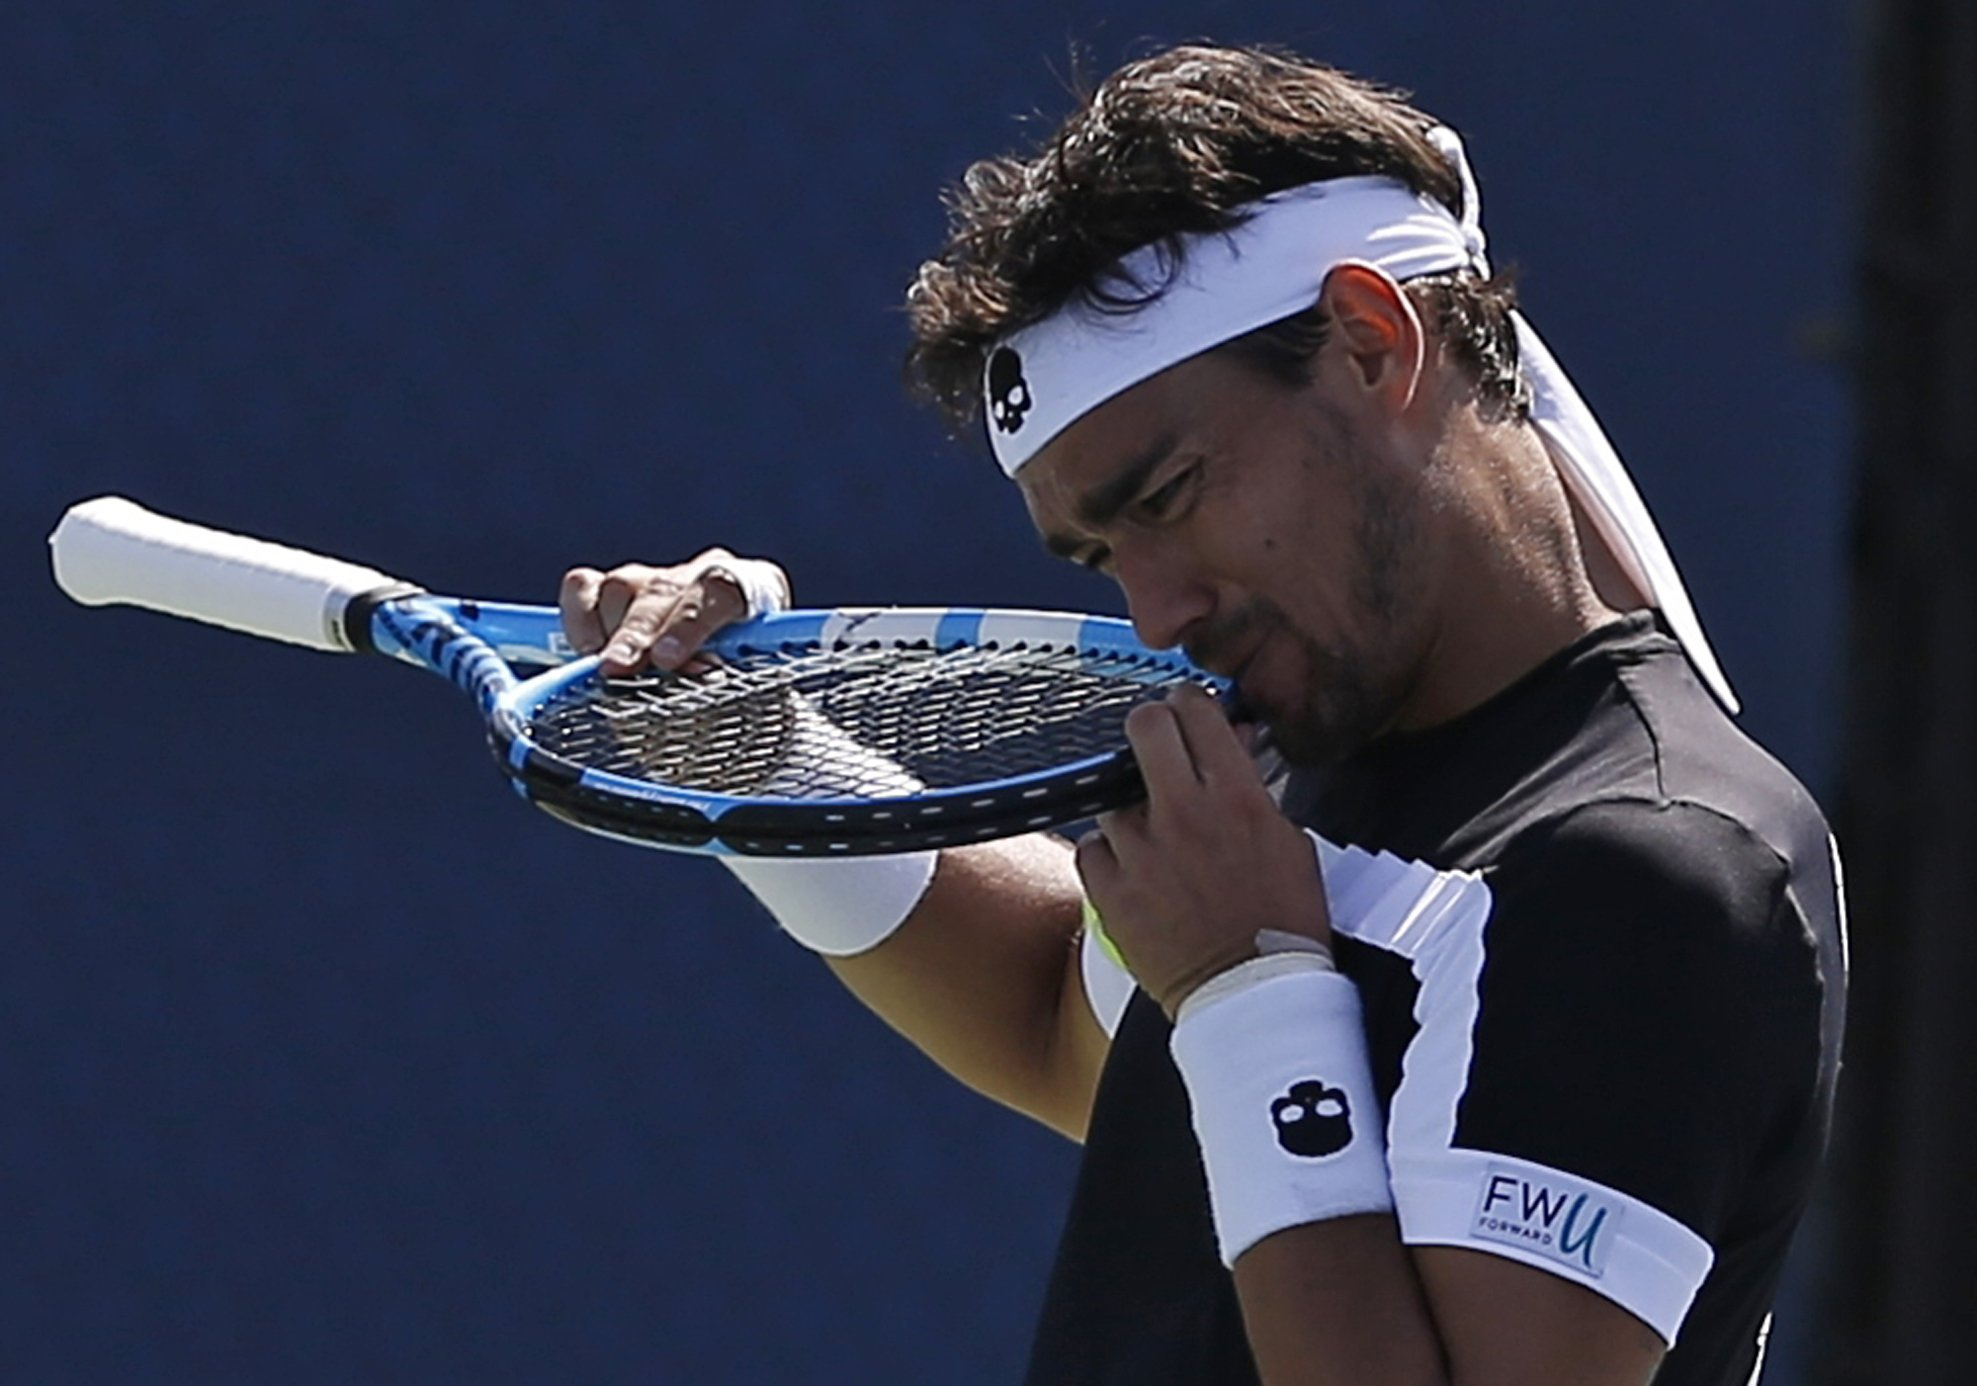 Fabio Fognini kicked out of the US Open after abusing female umpire